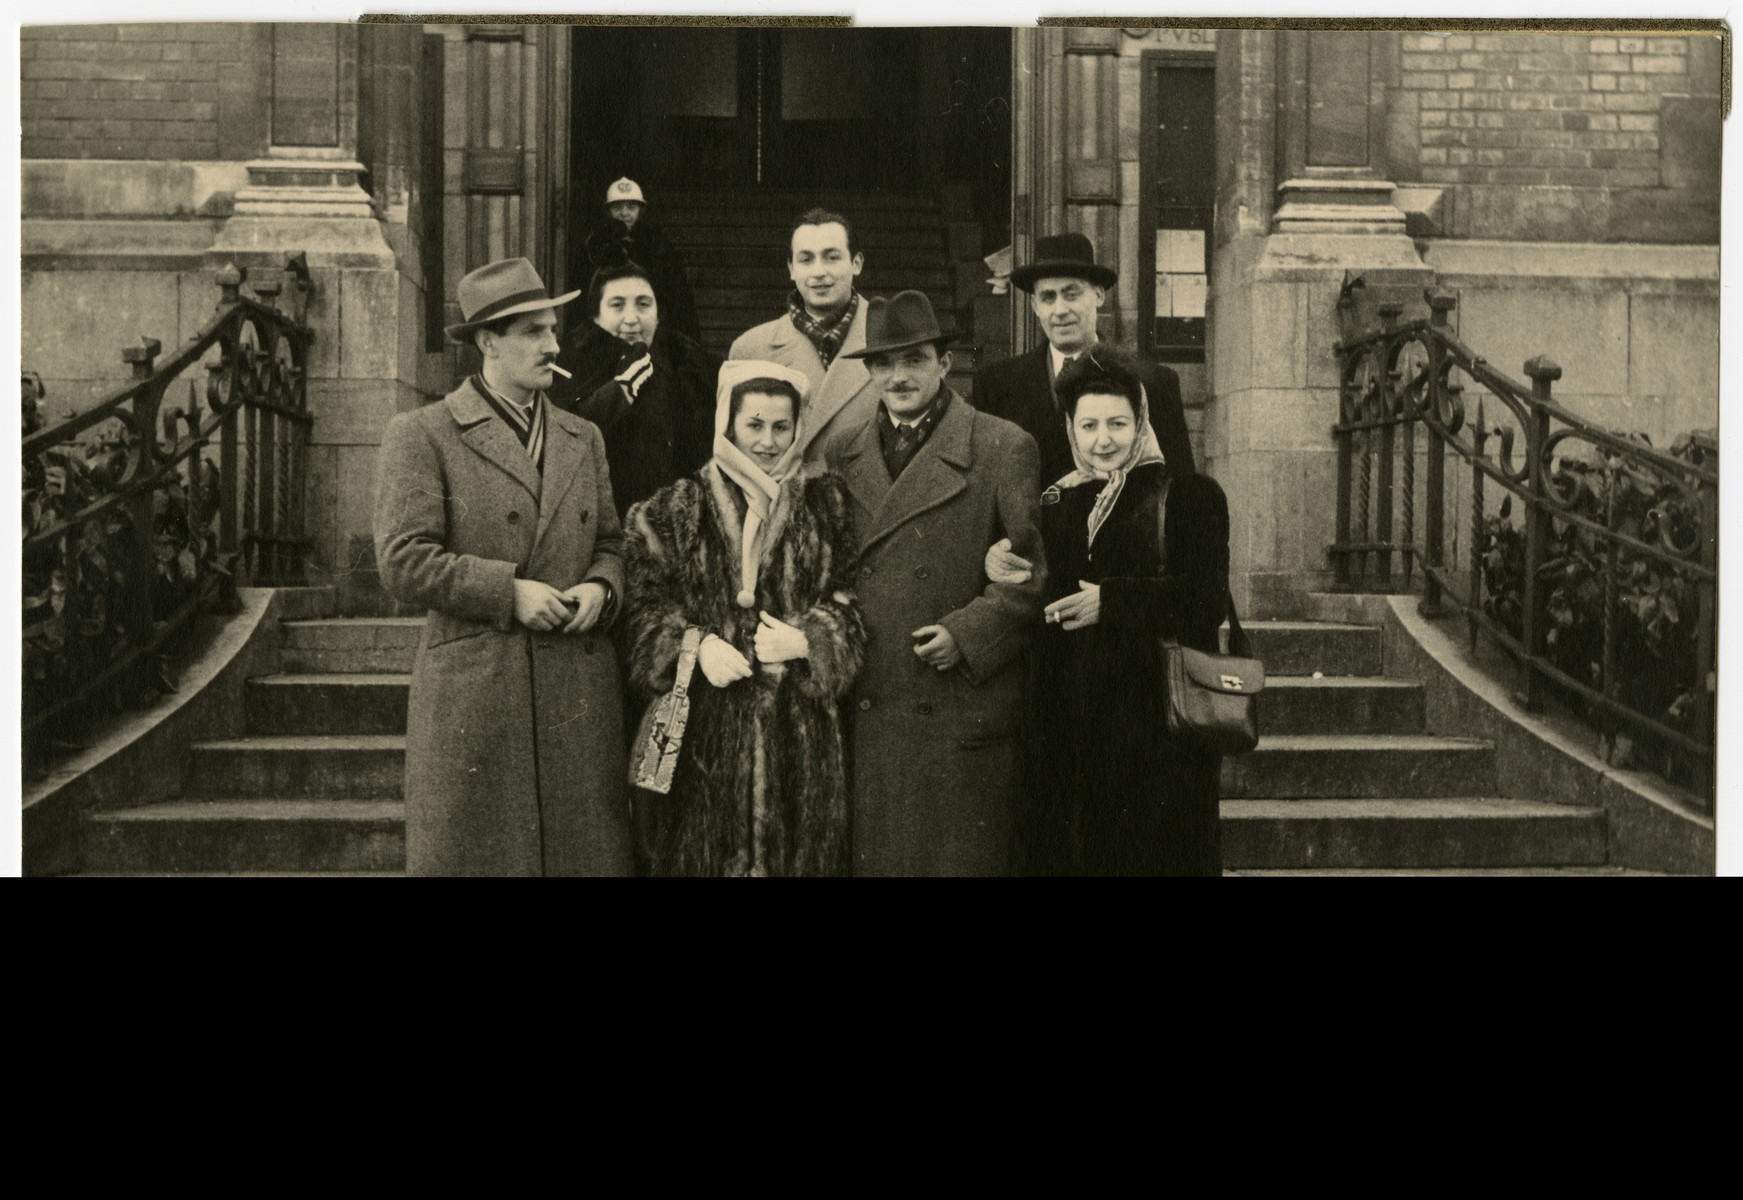 Group portrait of Belgian Zionists after the war standing on the steps of a building.  Fela Perelman is standing at the front, right.  Willy Katz is at the front, left.